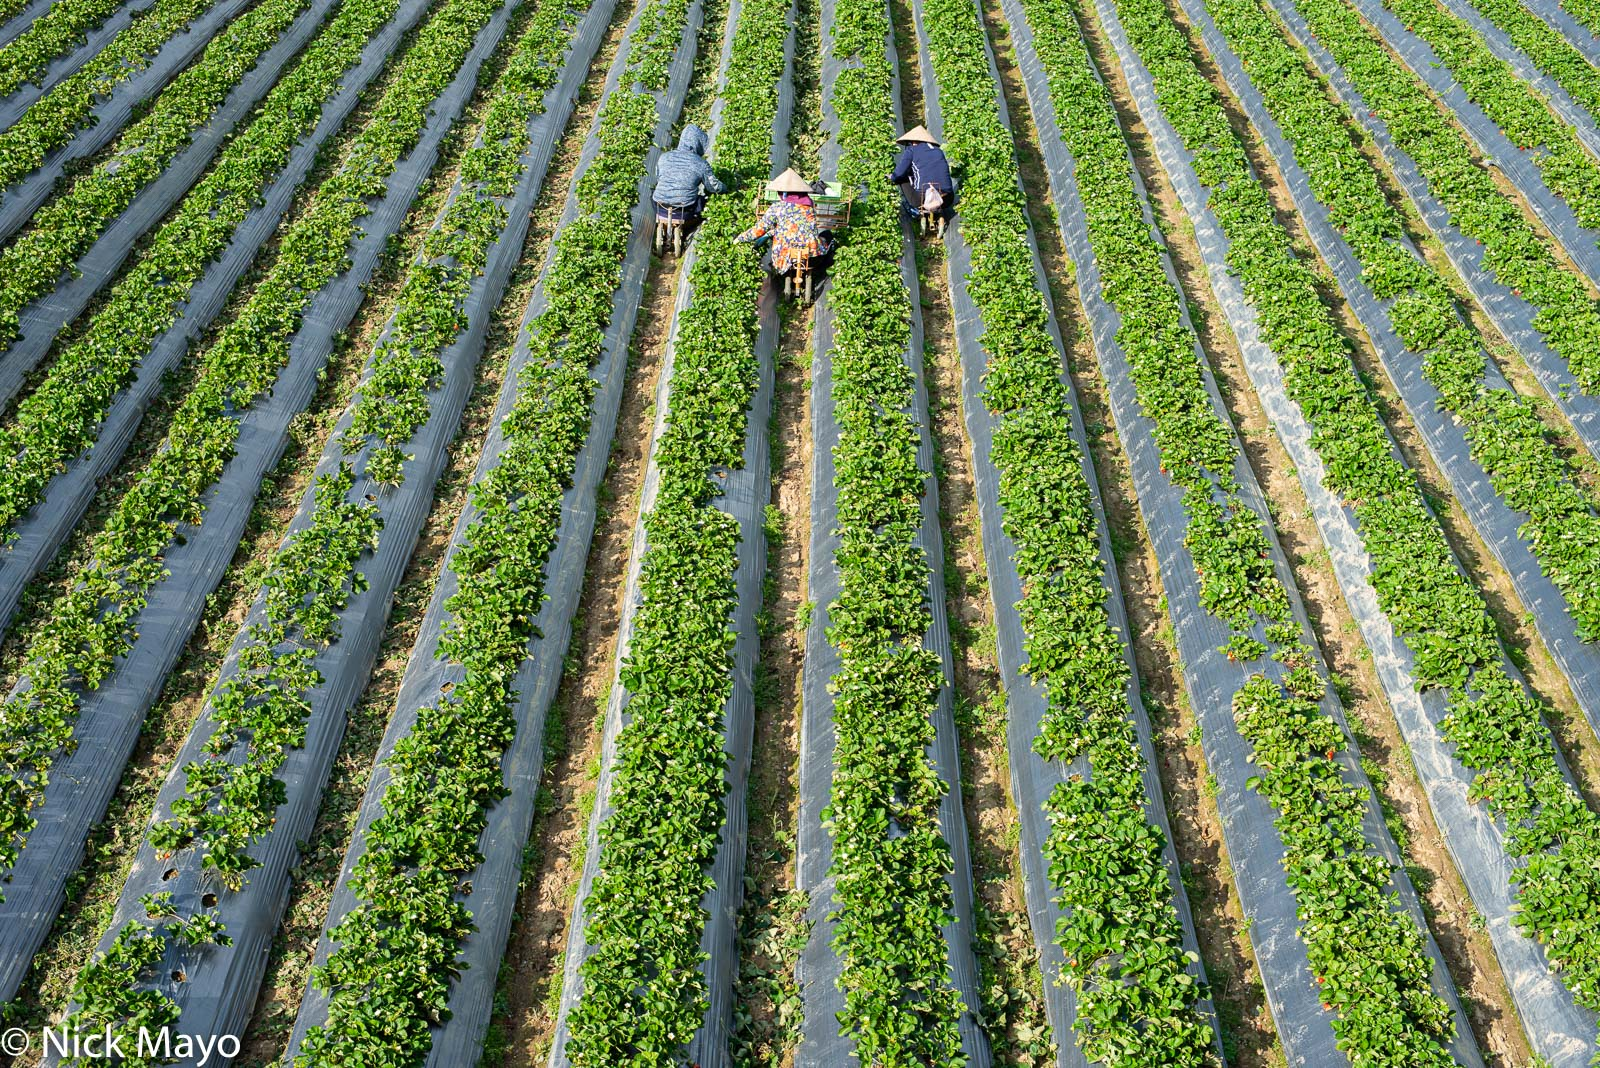 Three strawberry pickers at work in a field in Tahu in Miaoli County.